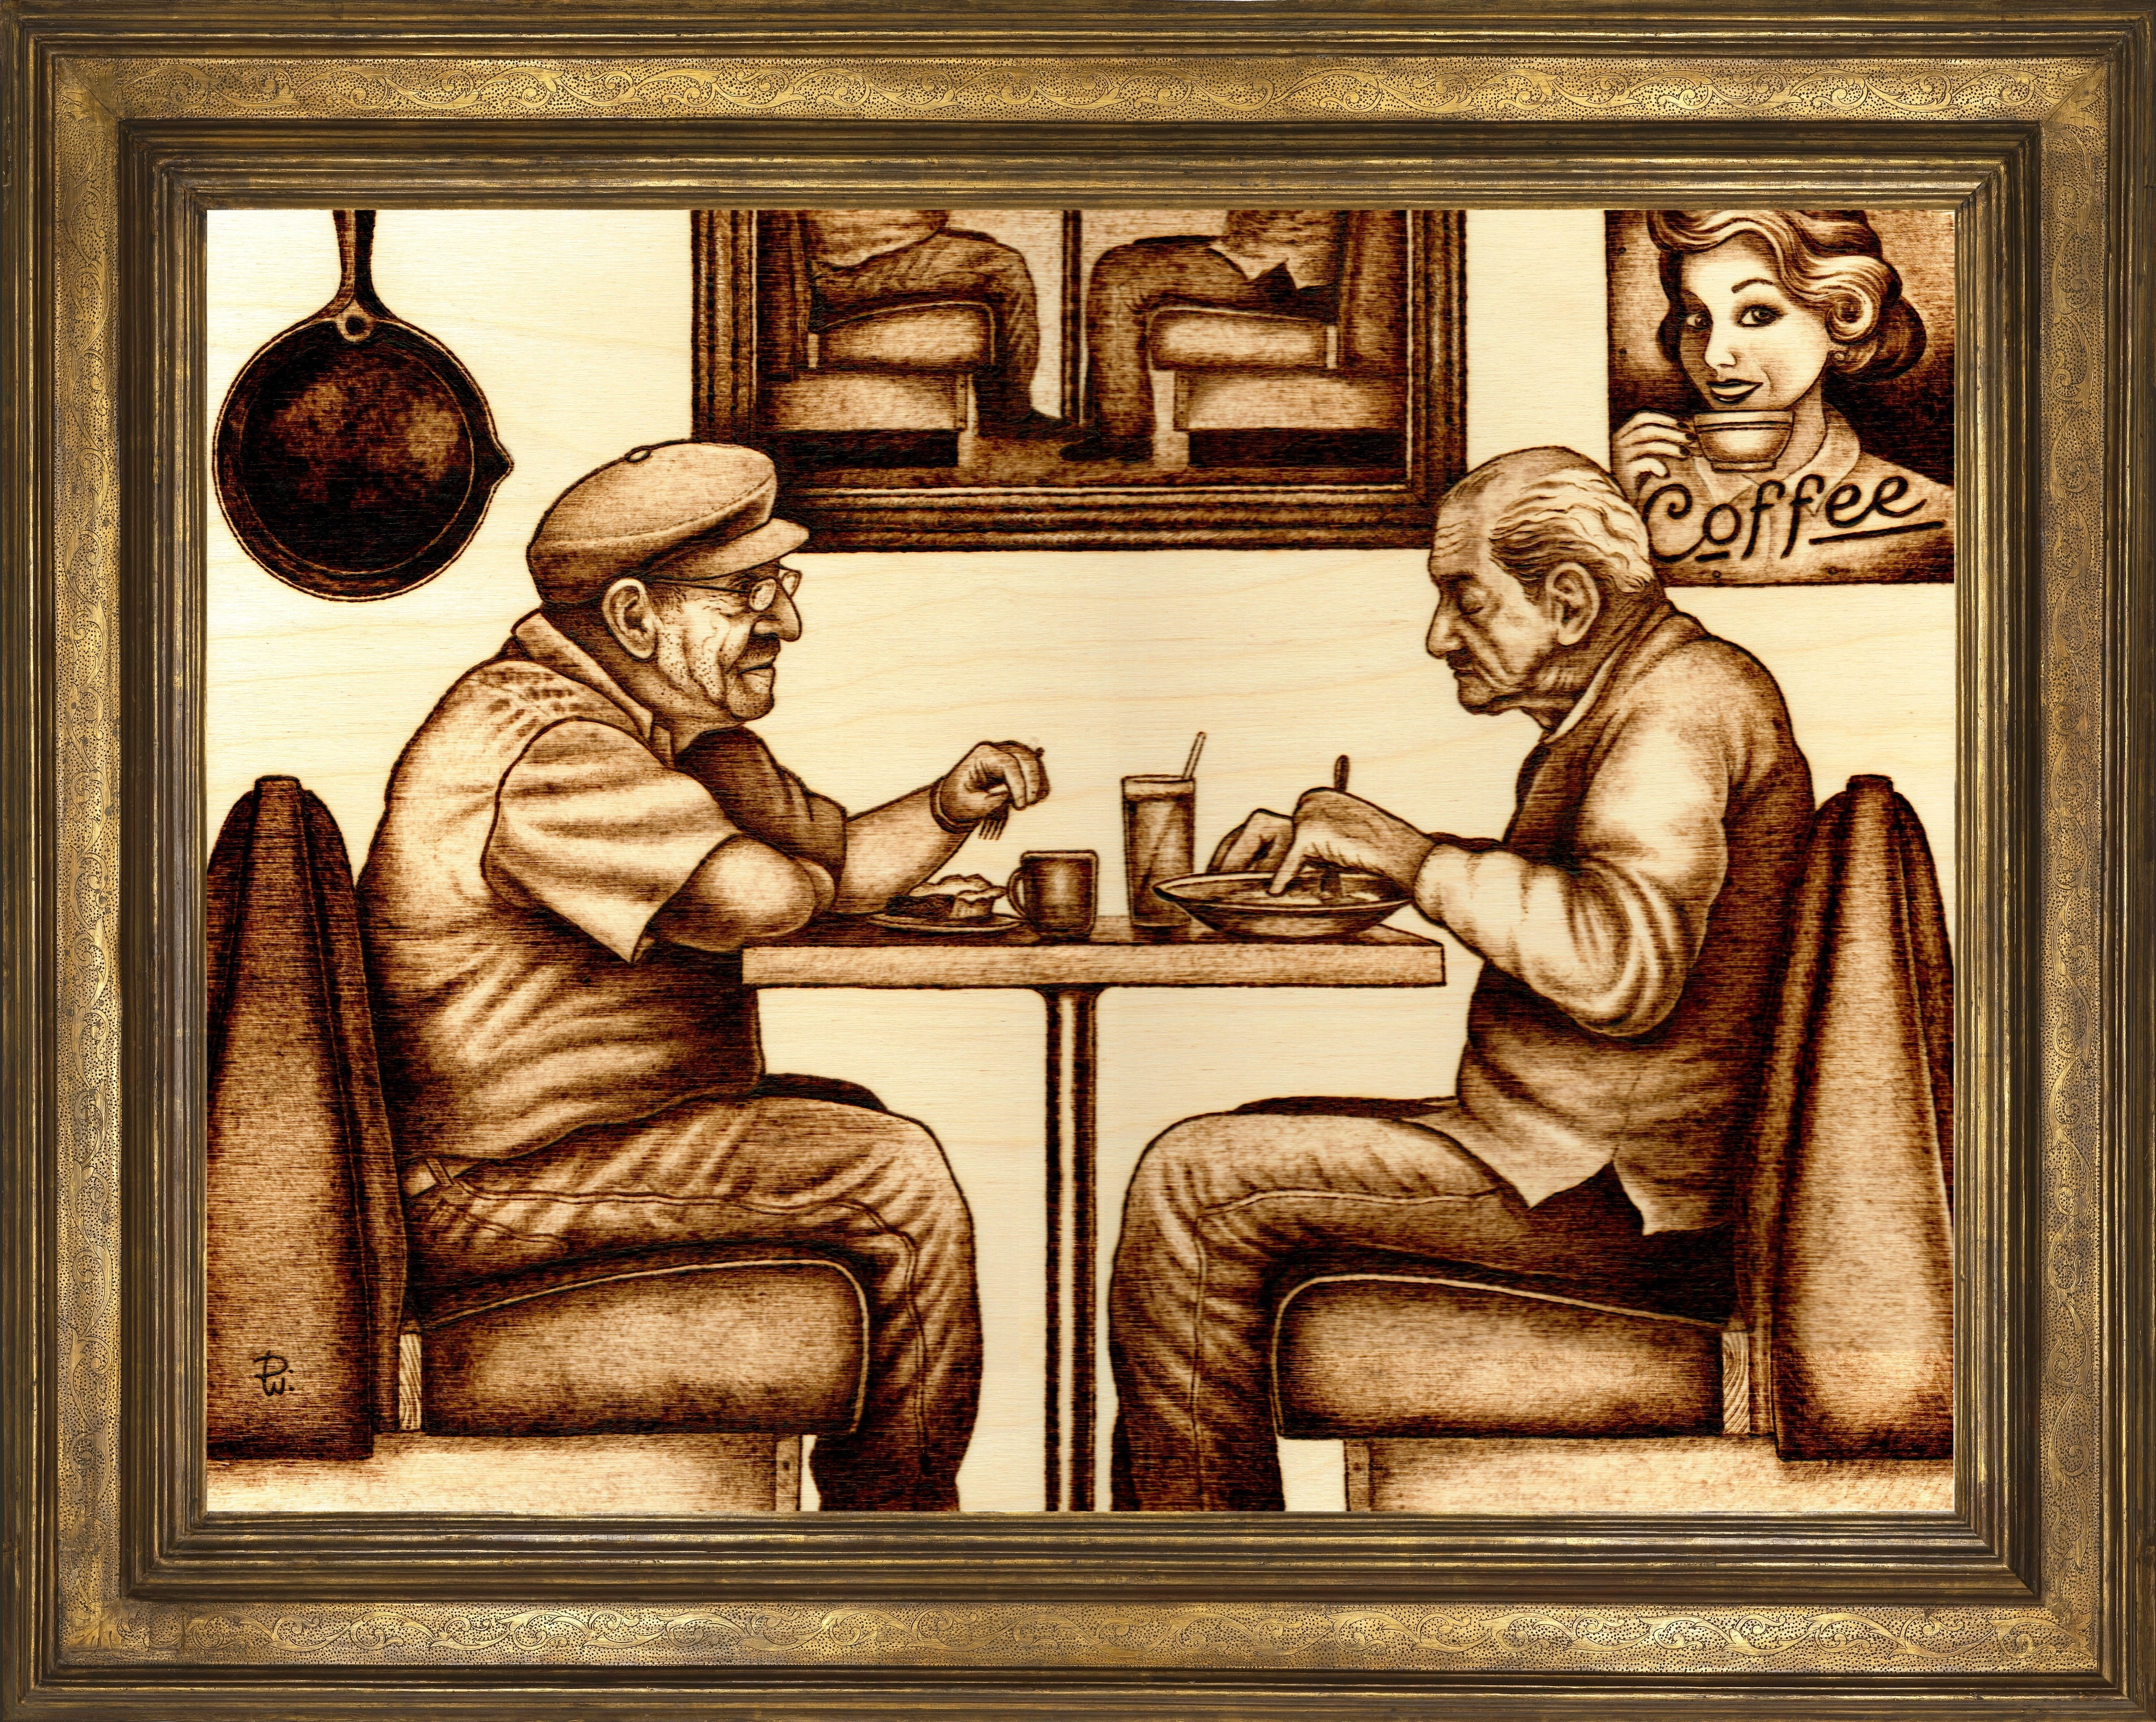 pyrography on wood of two old men eating